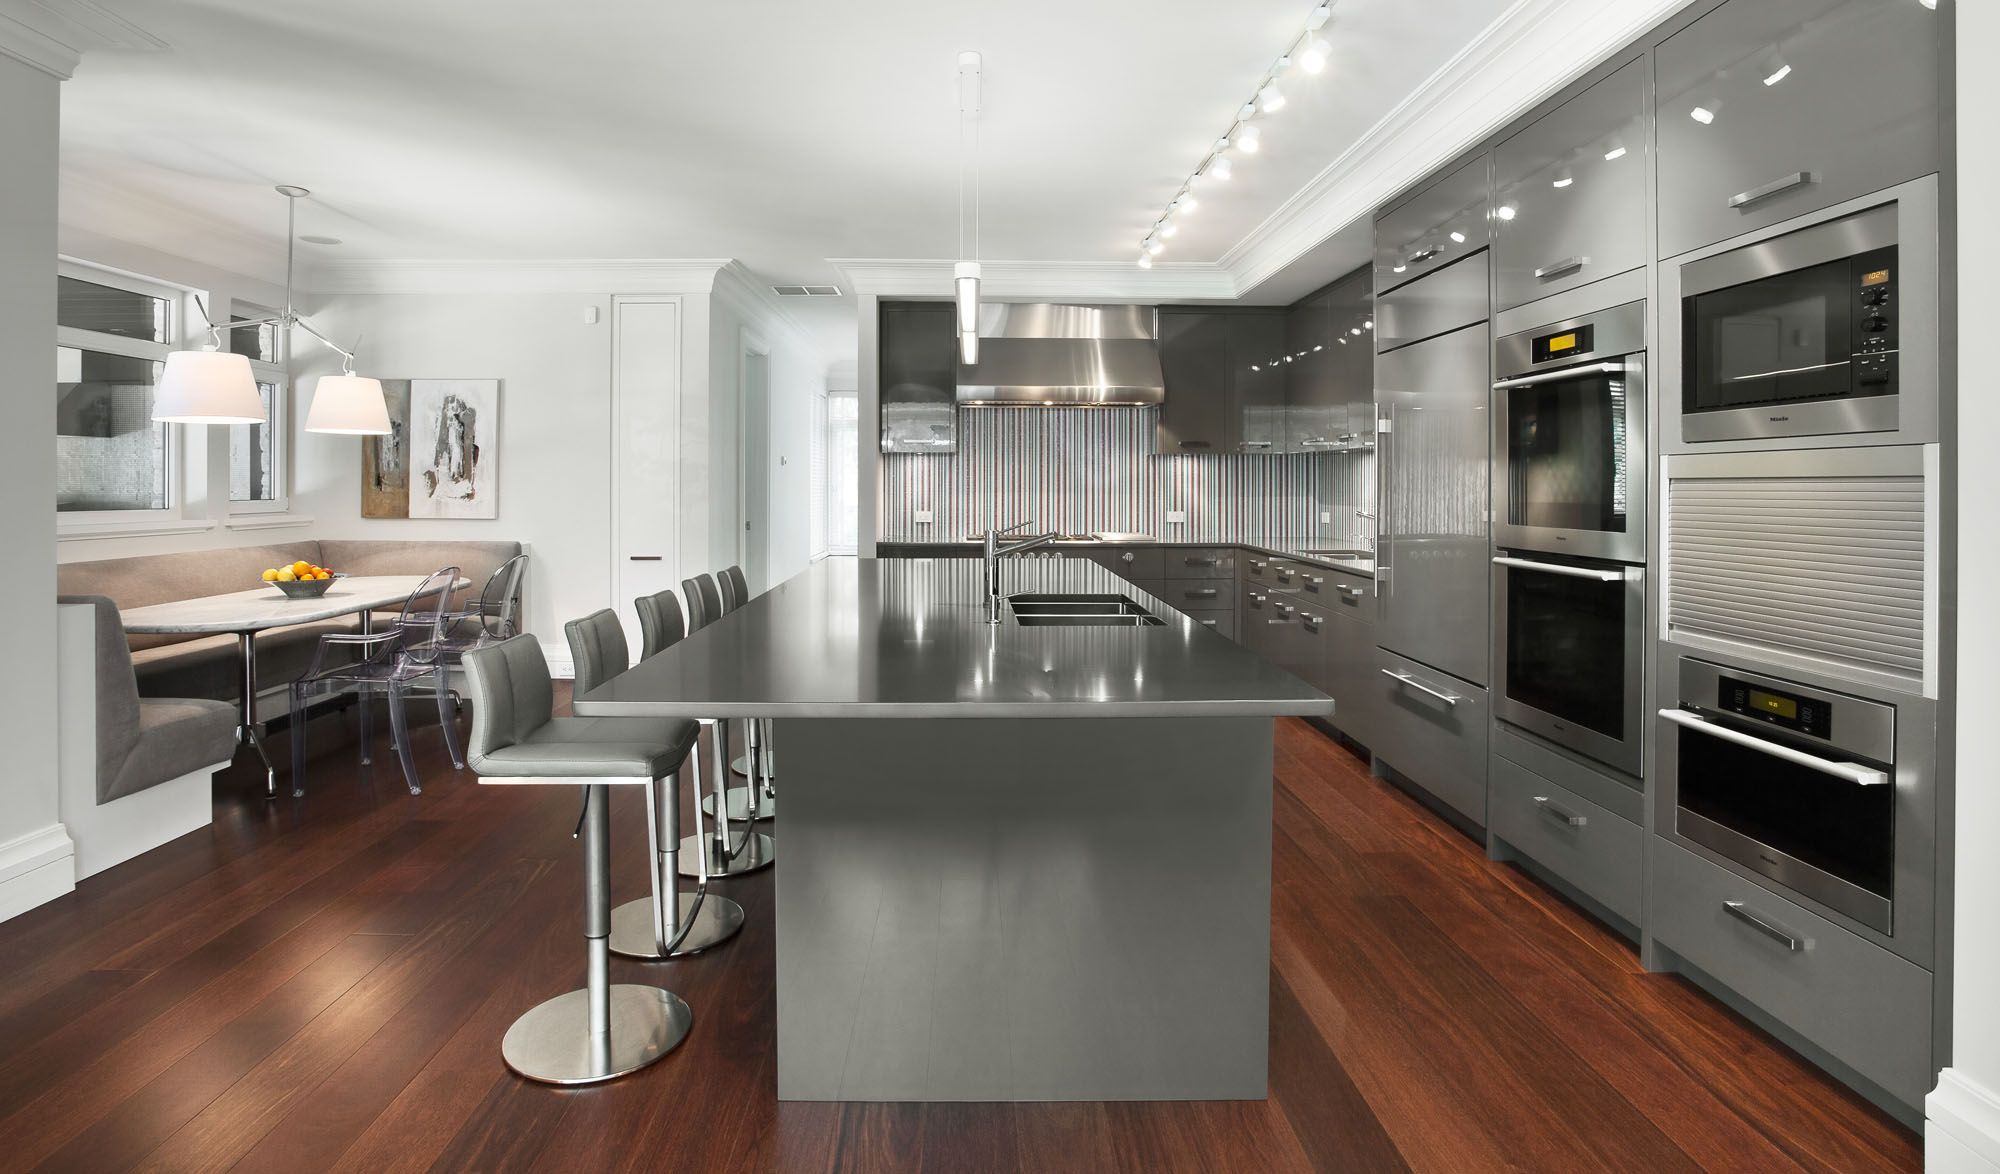 Contemporary Kitchen Cabinets Grey grey kitchen colors with white cabinets newinterior contemporary